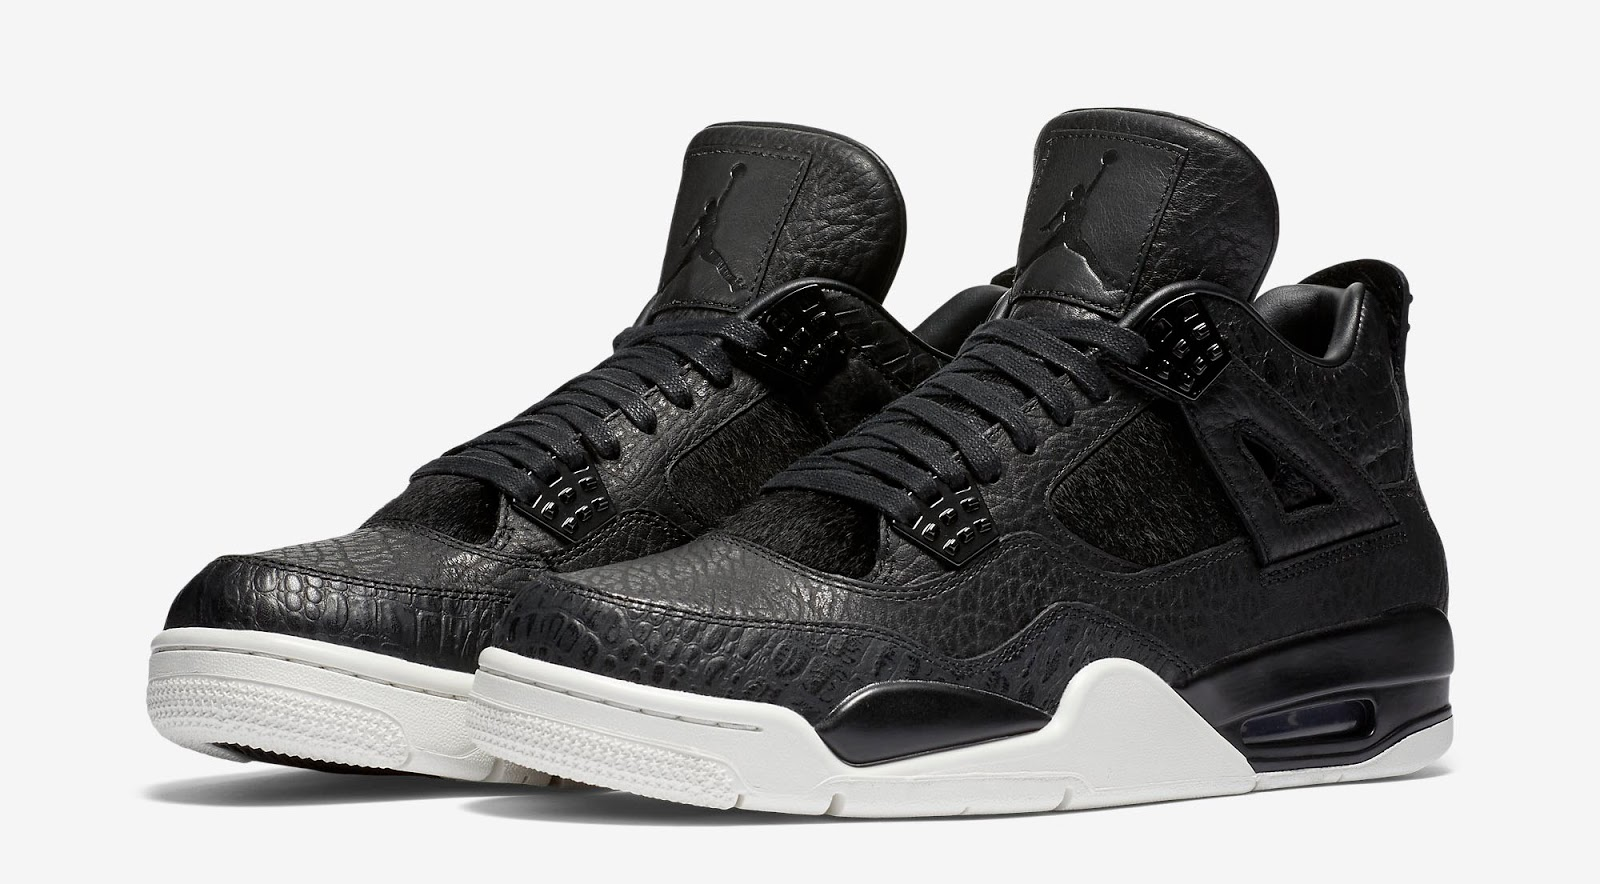 cca69495dd3 The latest colorway of the Air Jordan 4 hits stores this weekend.